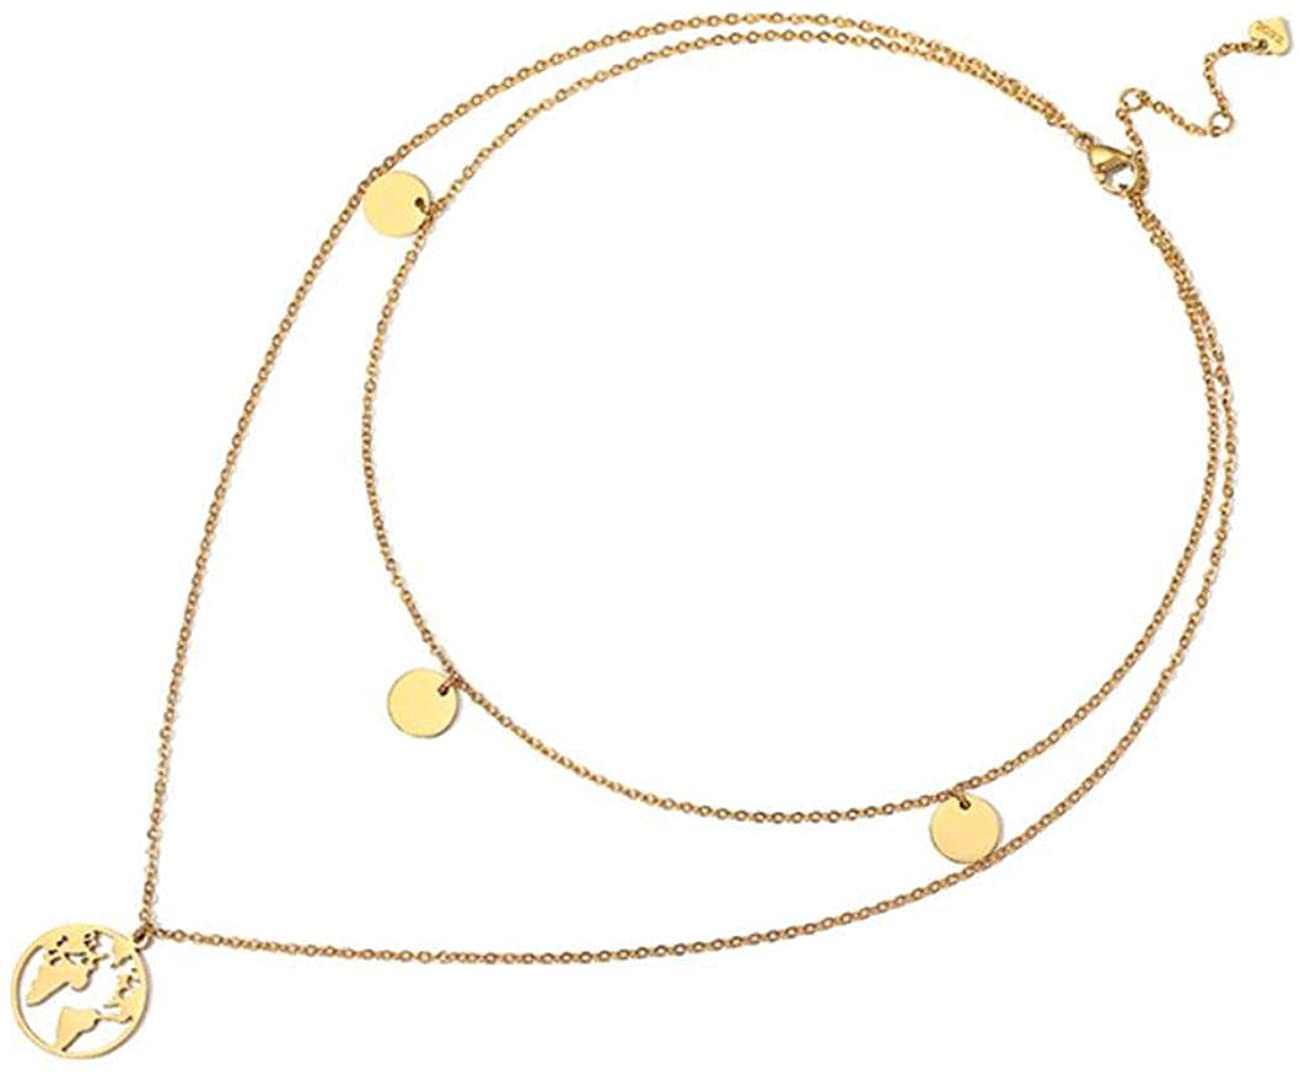 Allure Personalized Double Layer Necklace Pendant Clavicle Chain Simple and Fashionable Neck Chain